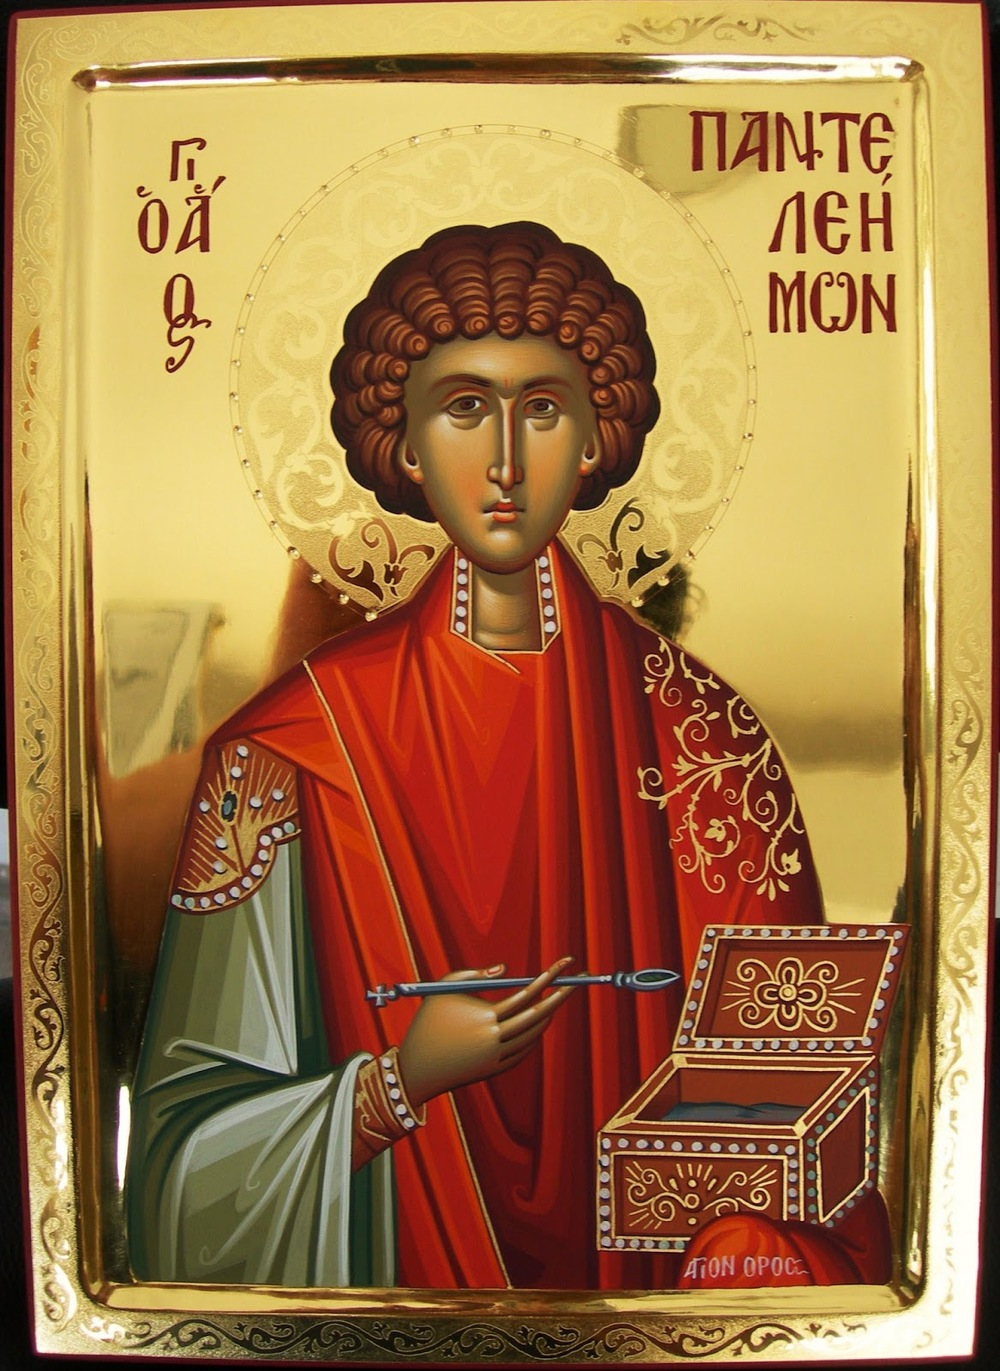 St. Panteleimon the Great Unmercenary Healer